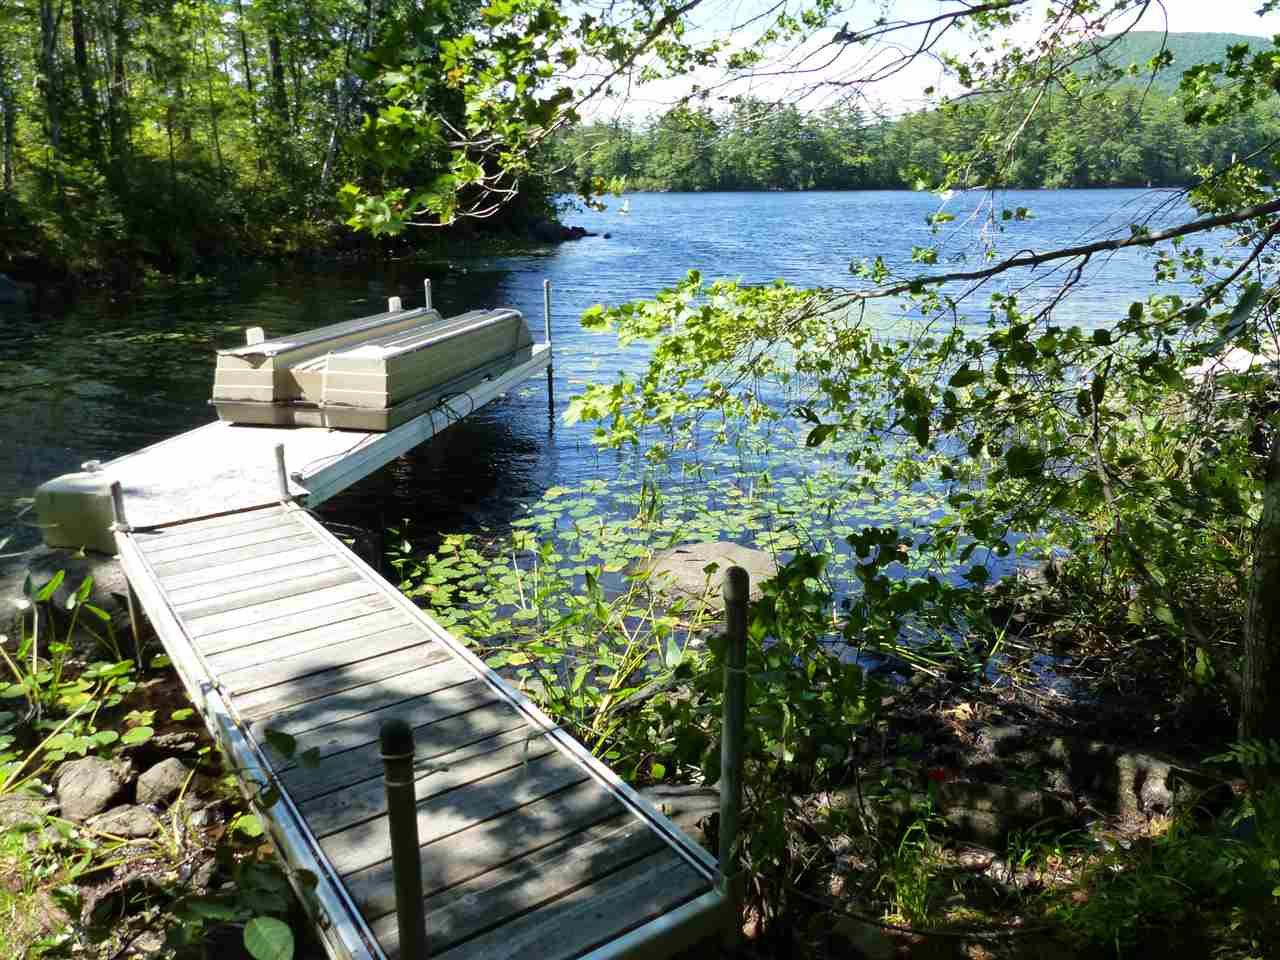 MLS 4773307: Lot 75-12 Blake Road, Moultonborough NH